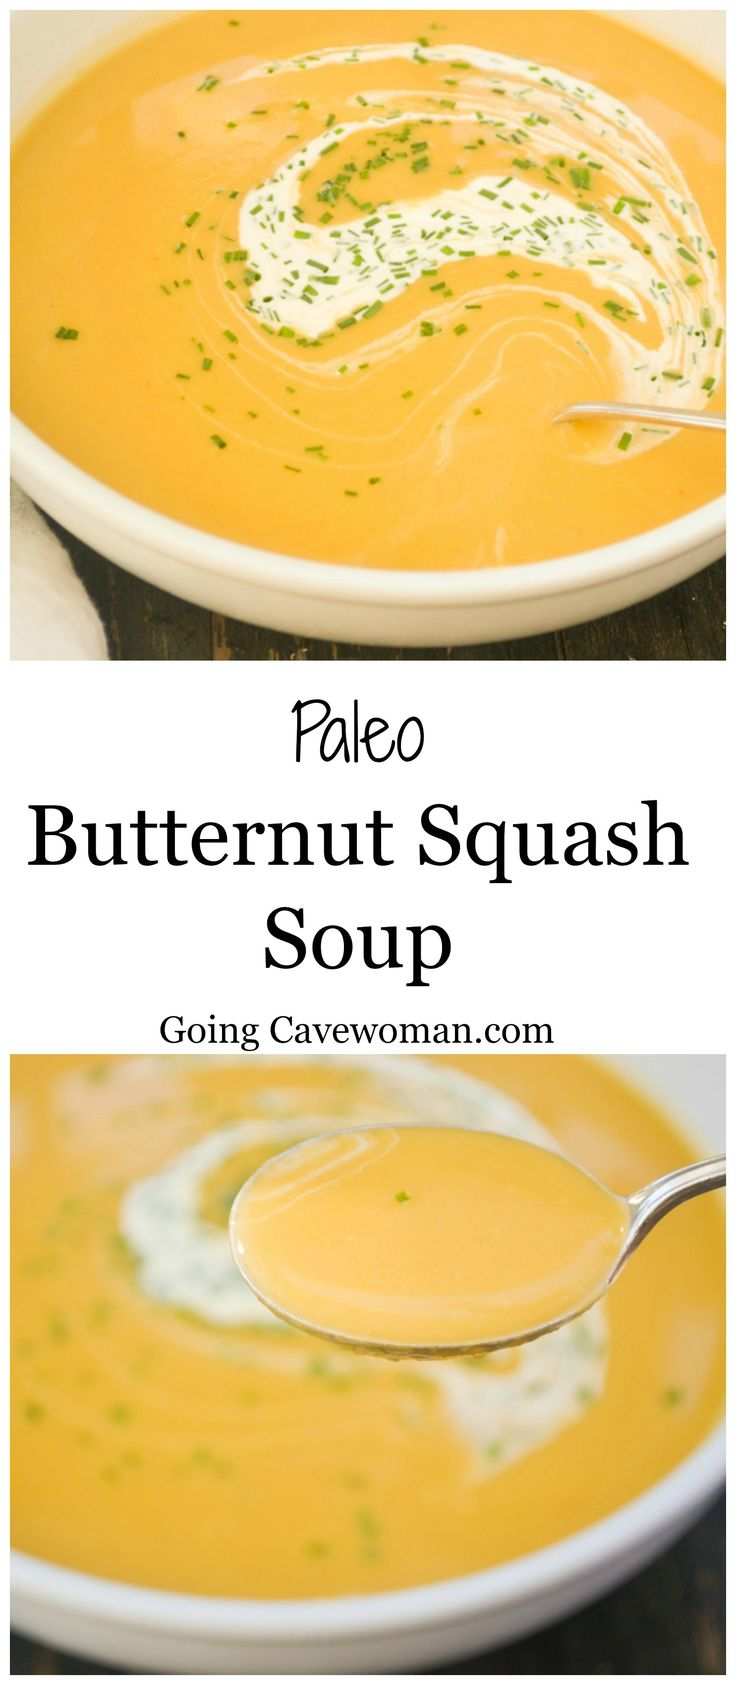 Paleo Butternut Squash Soup - A deliciously creamy, dairy free, filling soup.  #paleo #grainfree #glutenfree